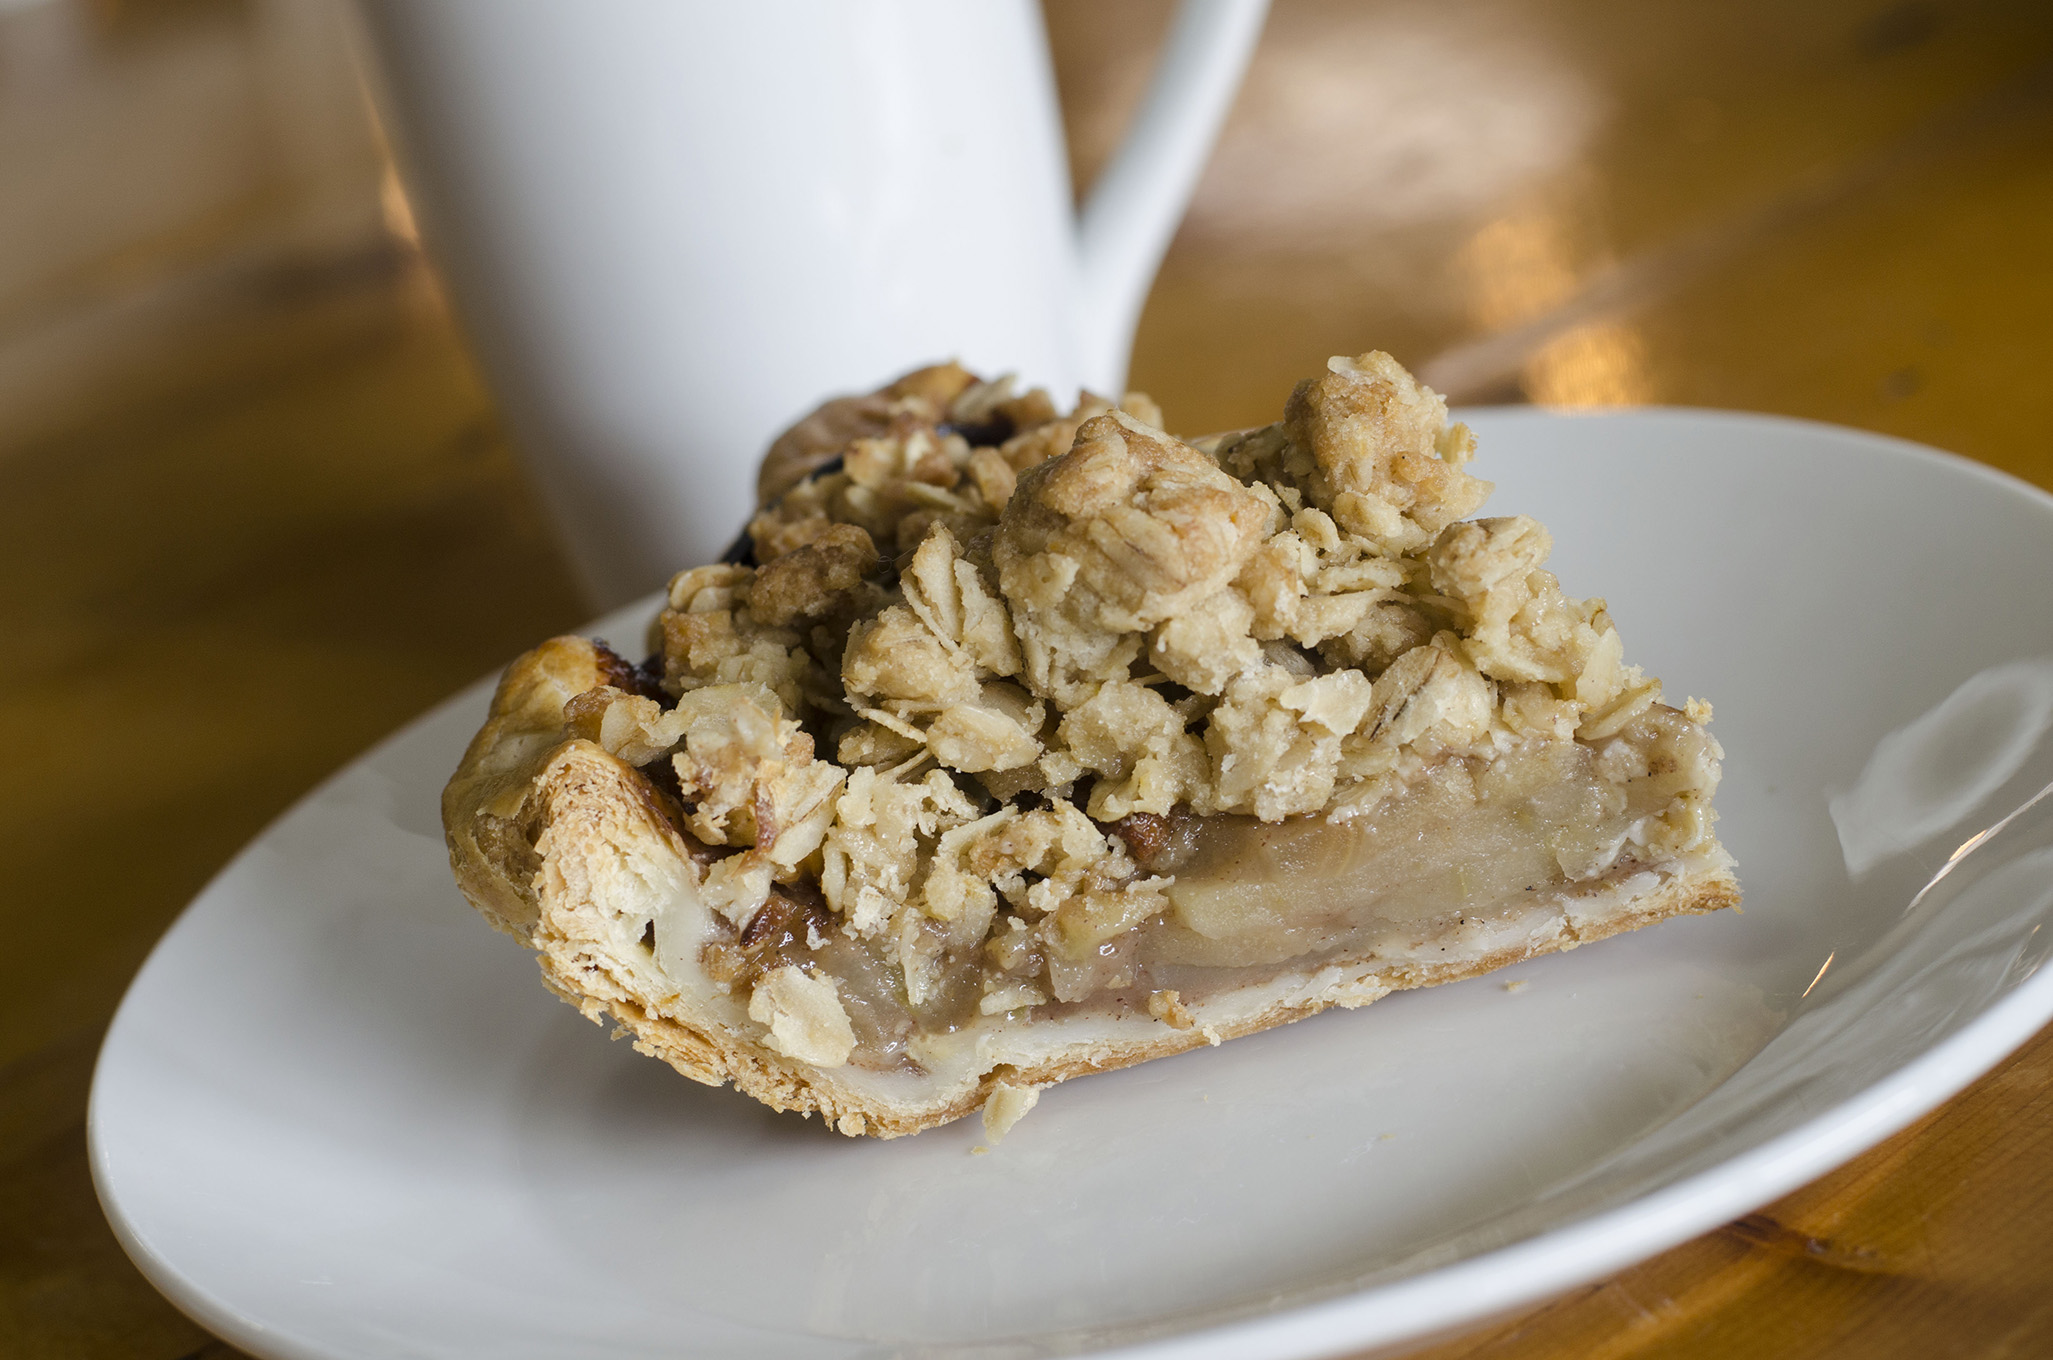 The Apple Crumble pie from Riverside Pie Cafe in Windsor, Ontario.